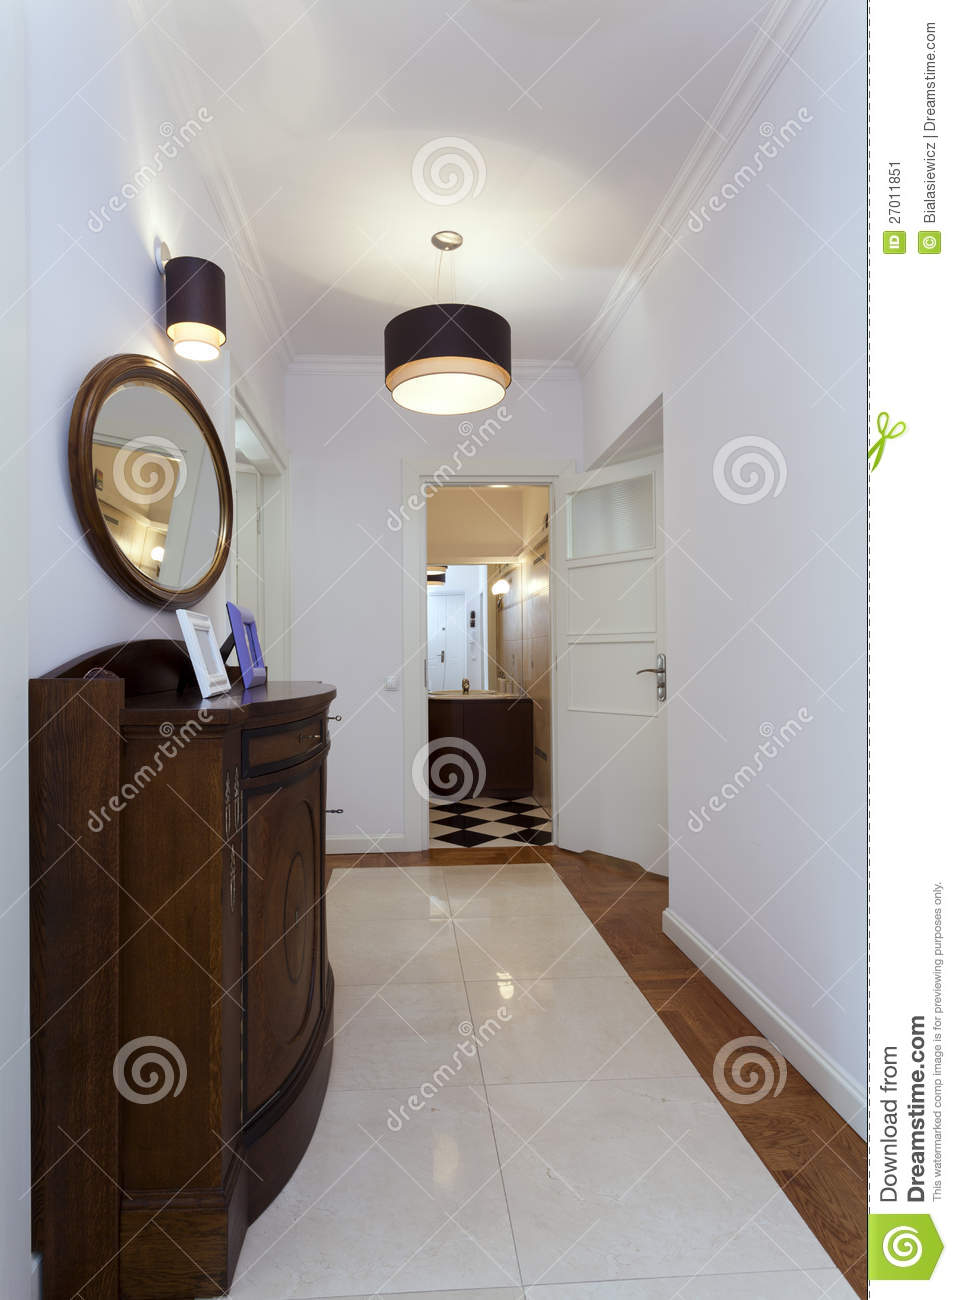 Corridor With Vintage Furniture Stock Image Image 27011851